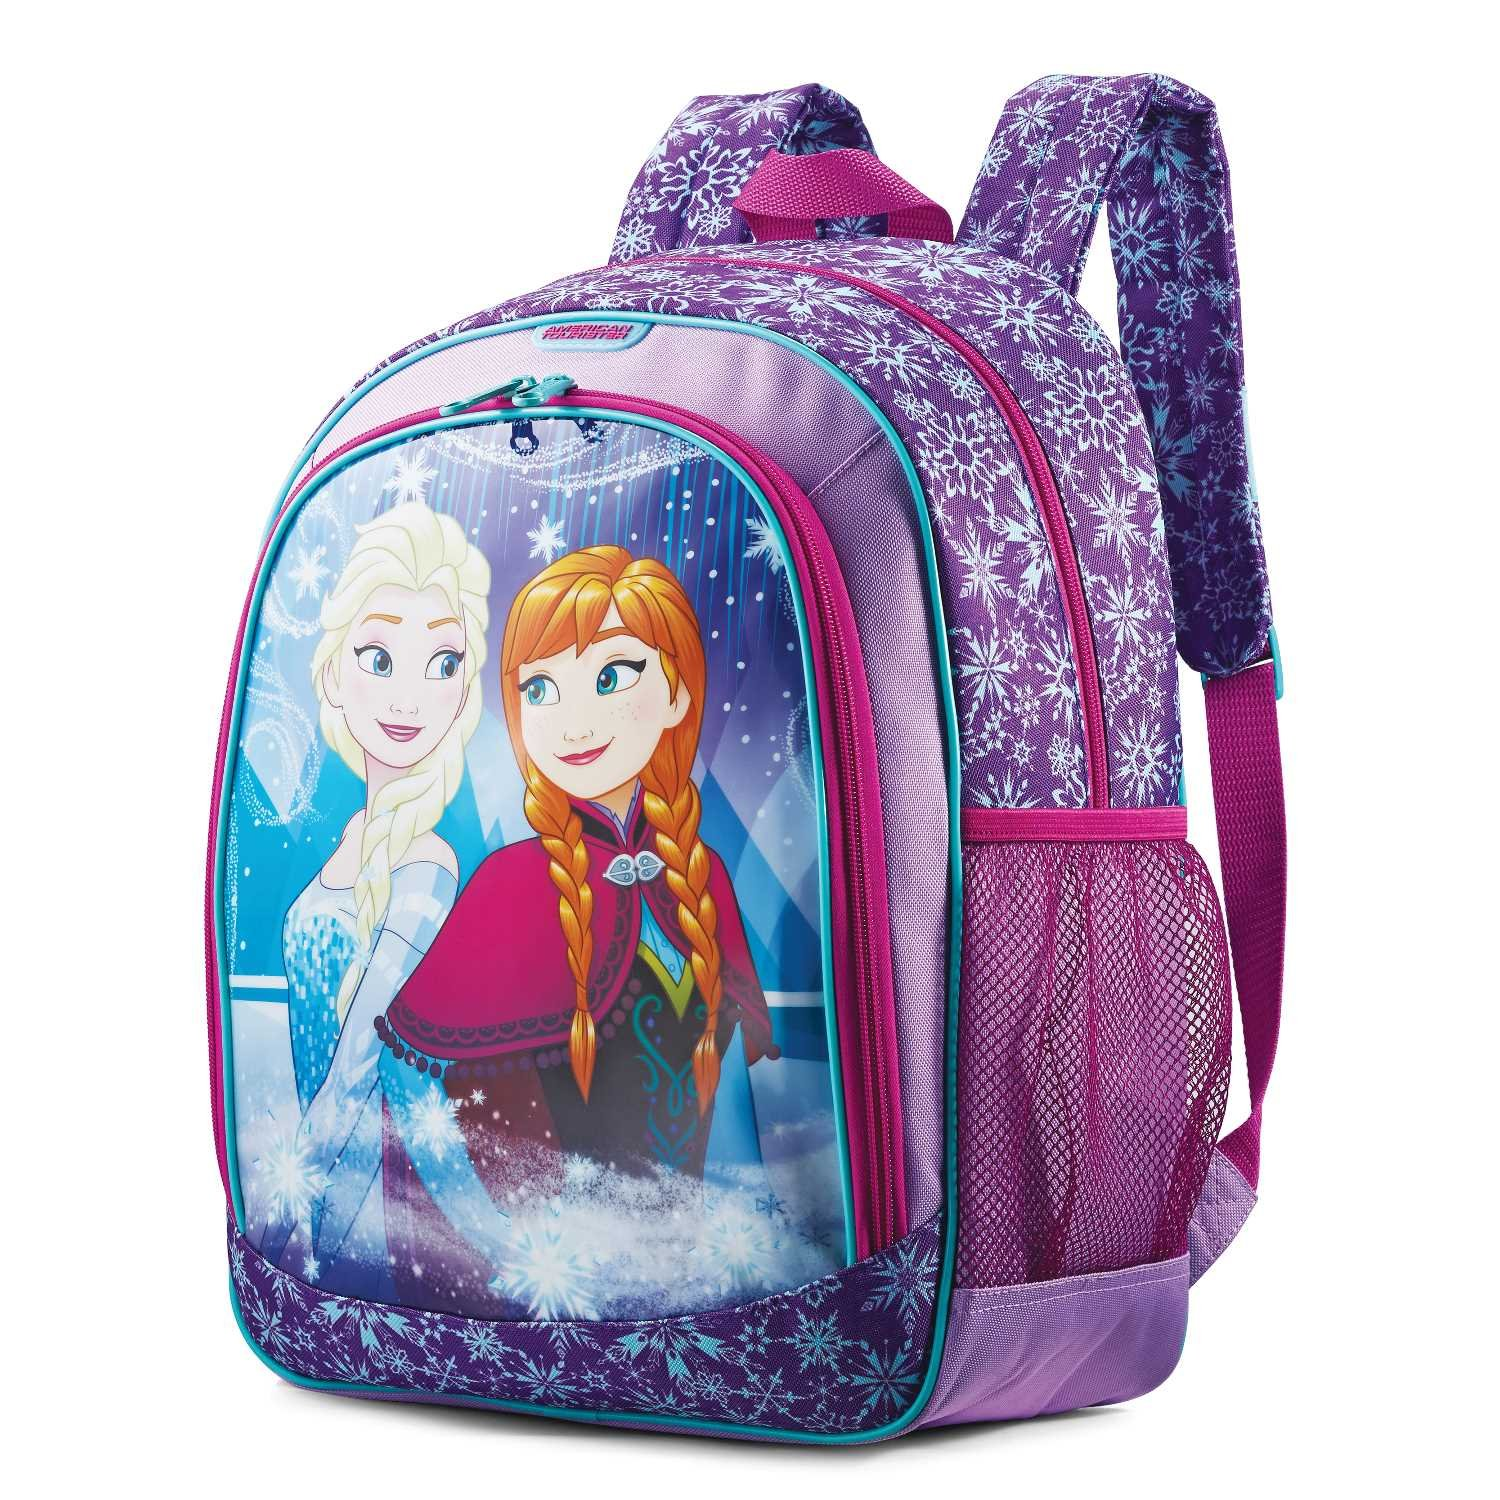 3a163059a9a childrens Kids Disney Backpack Frozen Bag for Girls Travel School Elsa    Anna